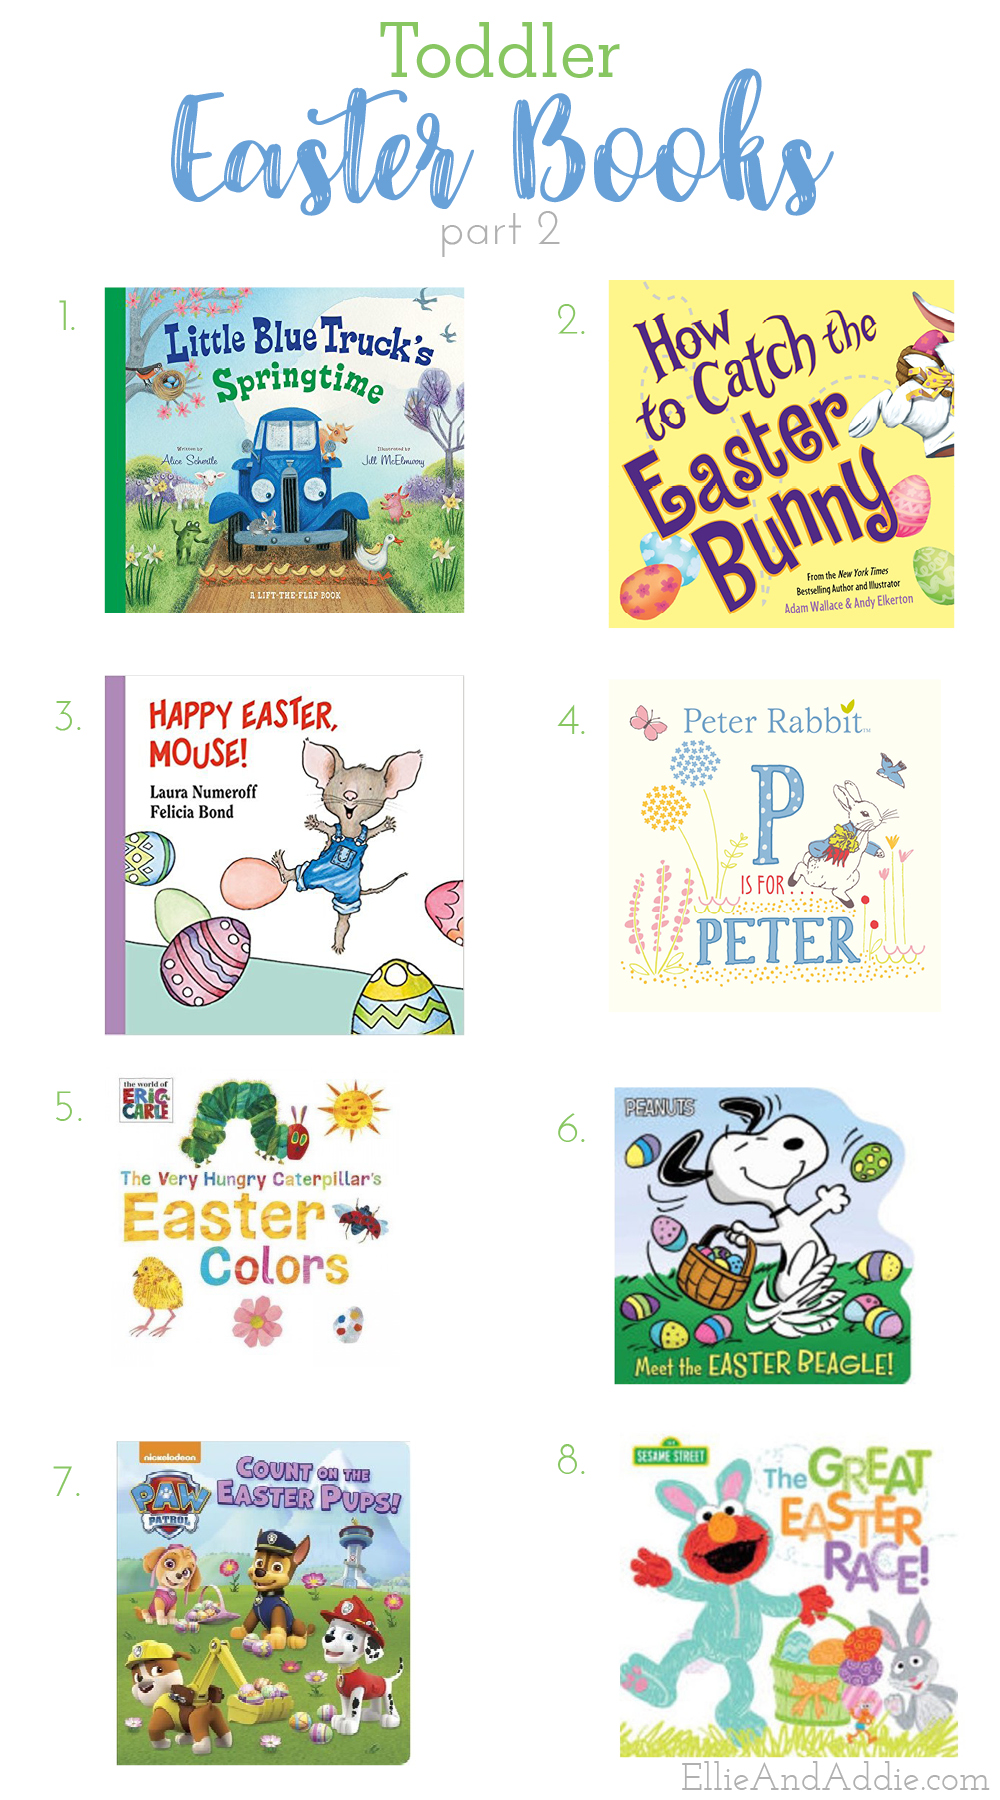 All the best Easter books for Toddlers - Toddler Easter Books | Ellie And Addie